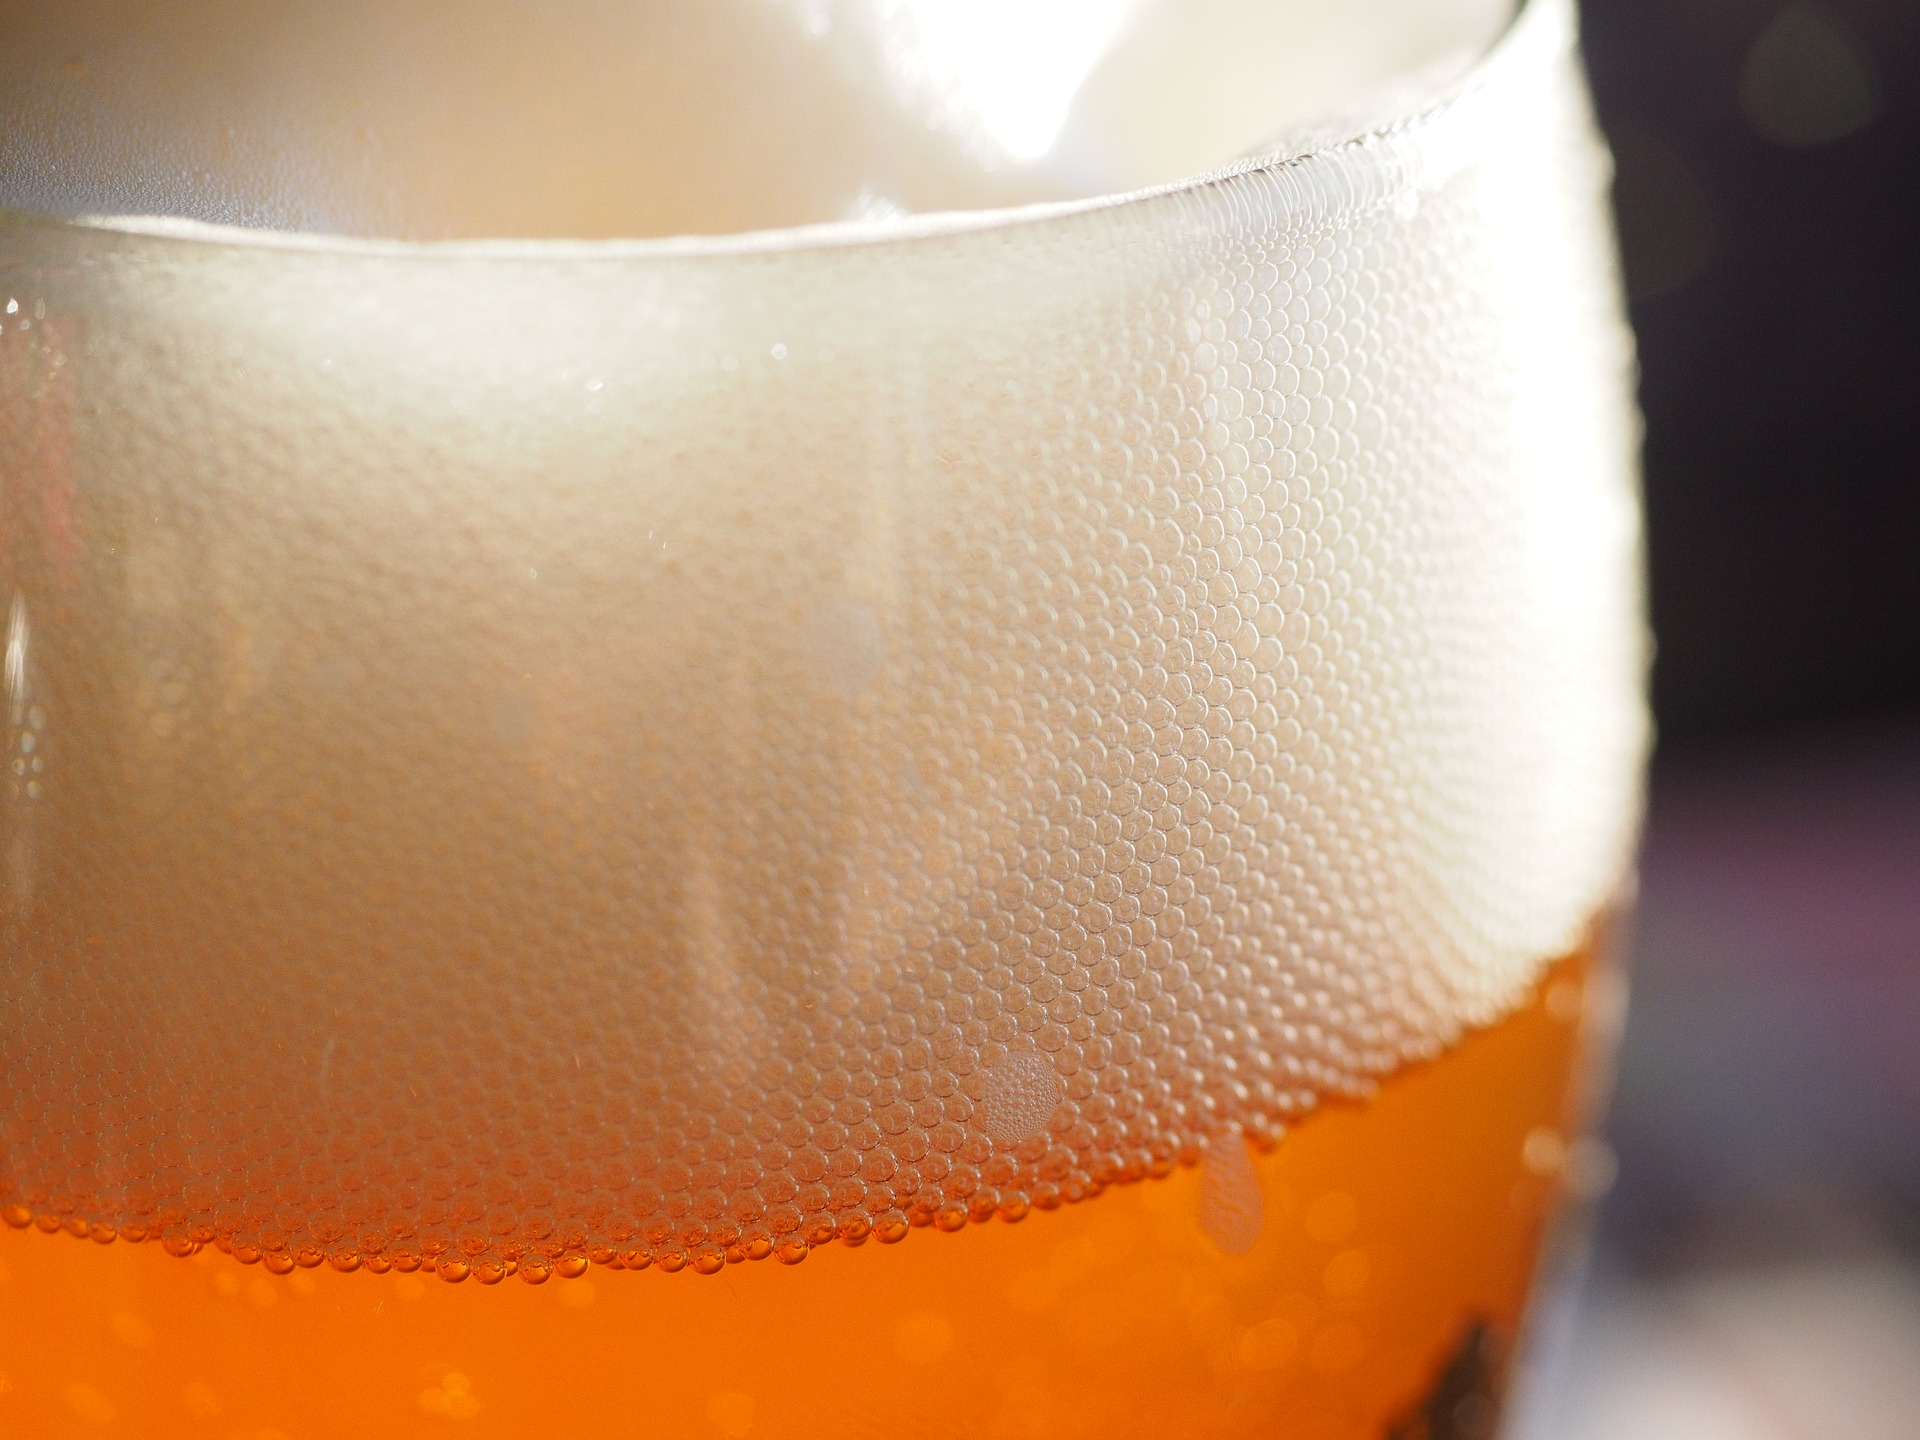 Foam Doesn't Just Make Your Beer Taste Better – It's Also a Shock-Absorber